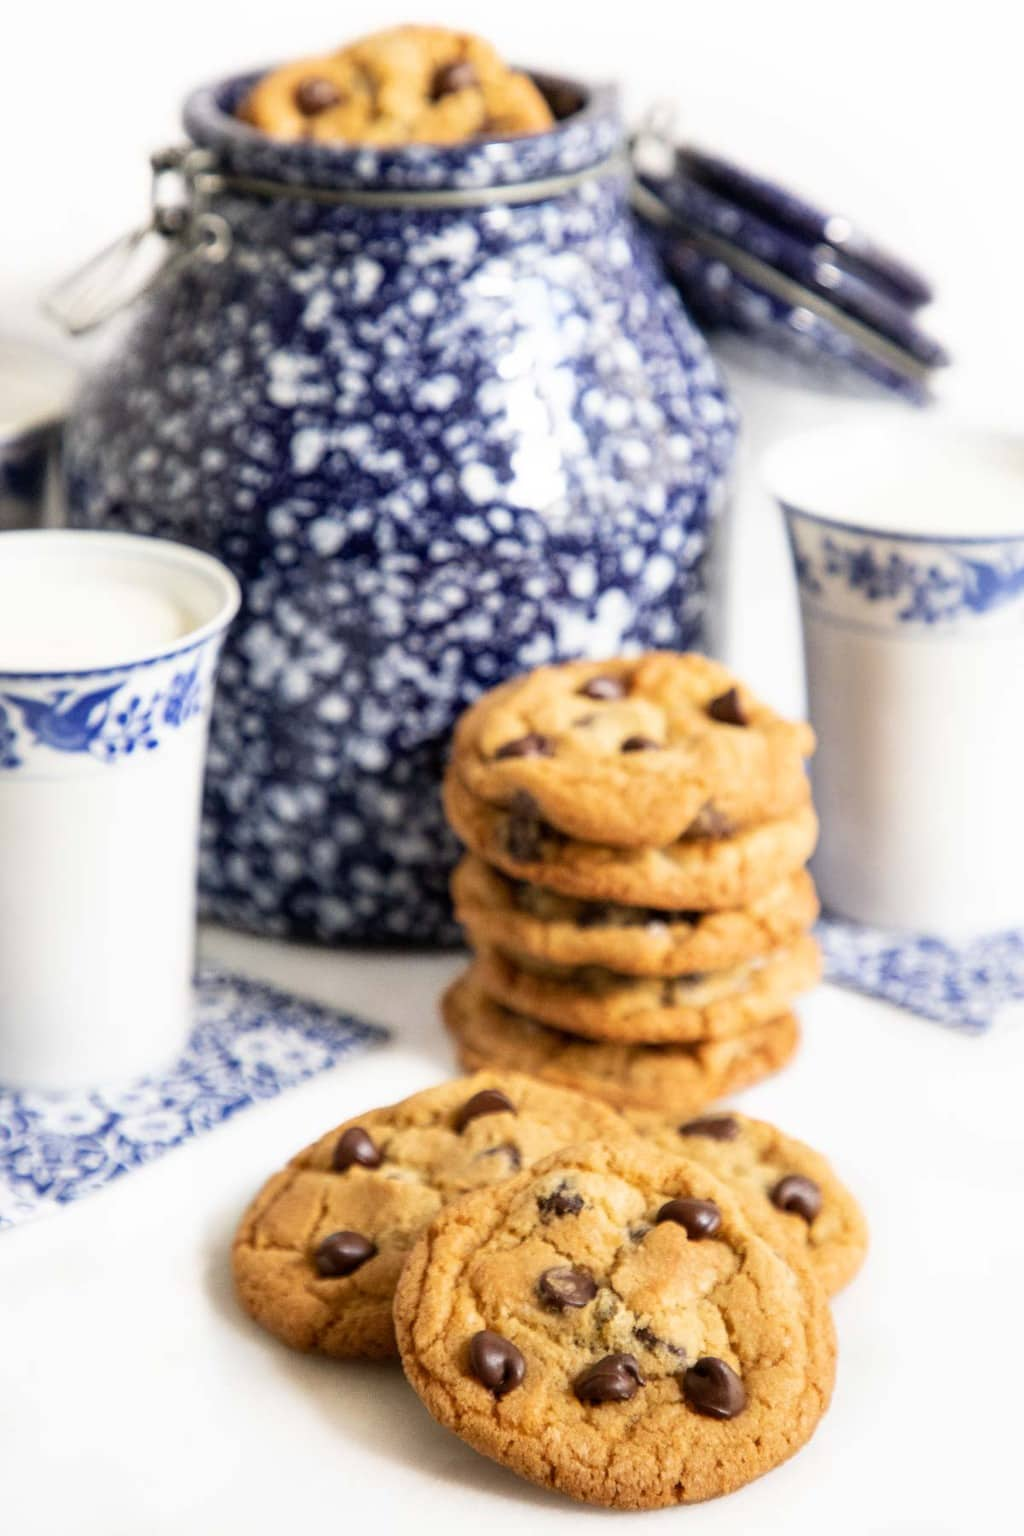 Vertical photo of a batch of The BEST Chocolate Chip Cookies next to blue and white patterned milk cups and a cookie jar.